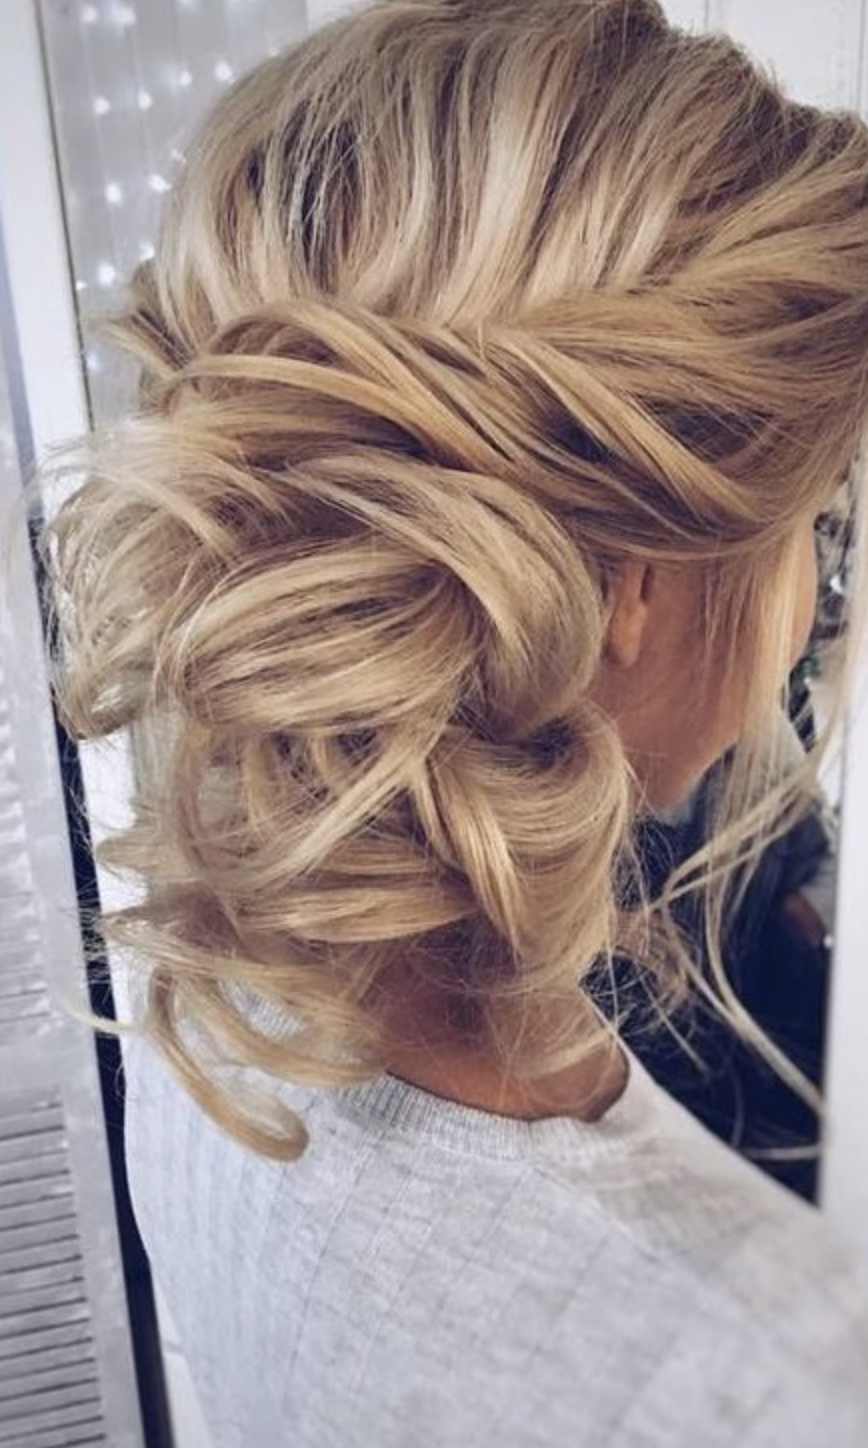 Messy Updo X Girlgetglamoroushair Clip In Hair Extensions Beach Day